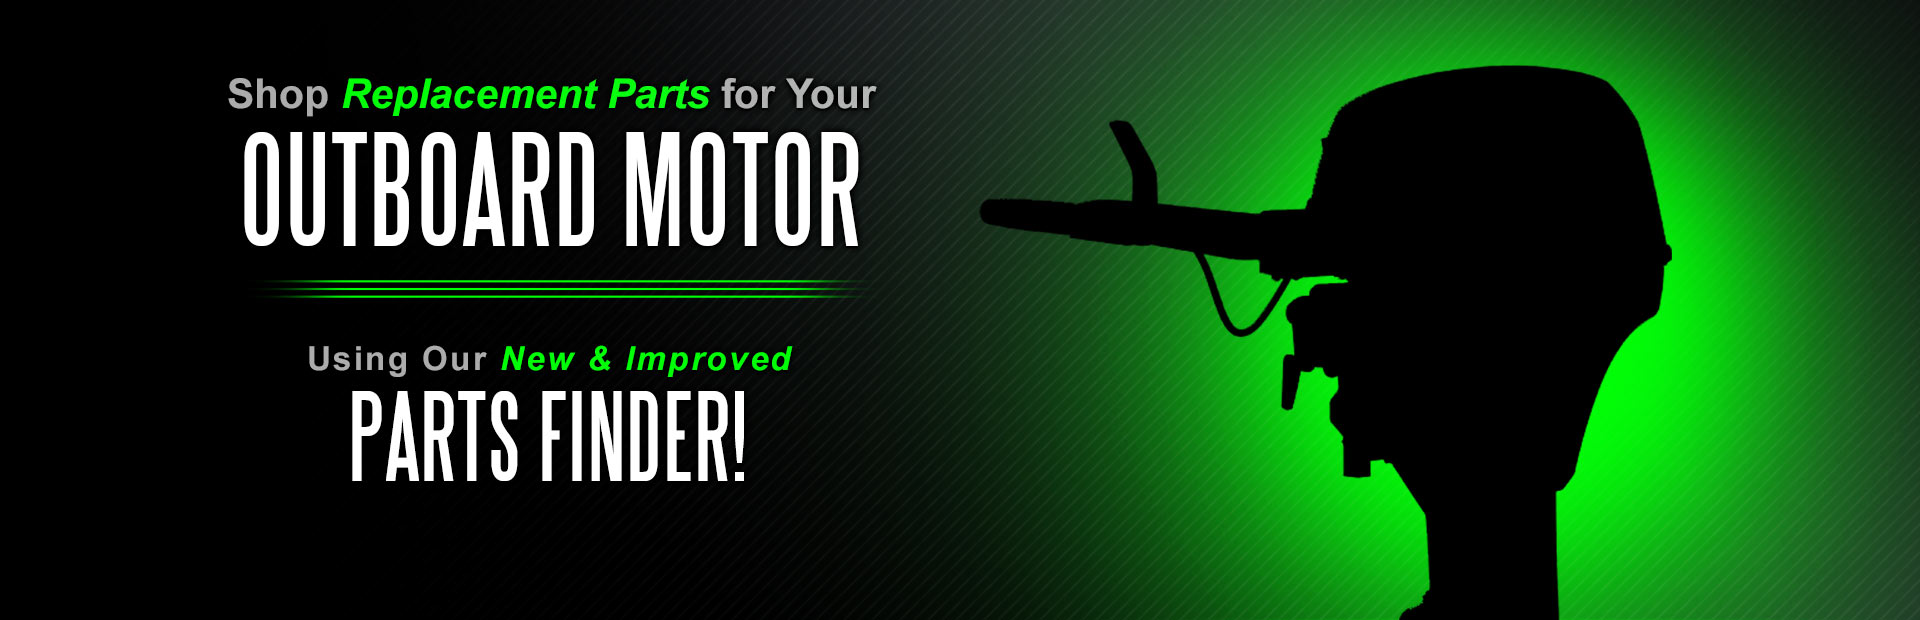 hight resolution of shop replacement parts for your outboard motor